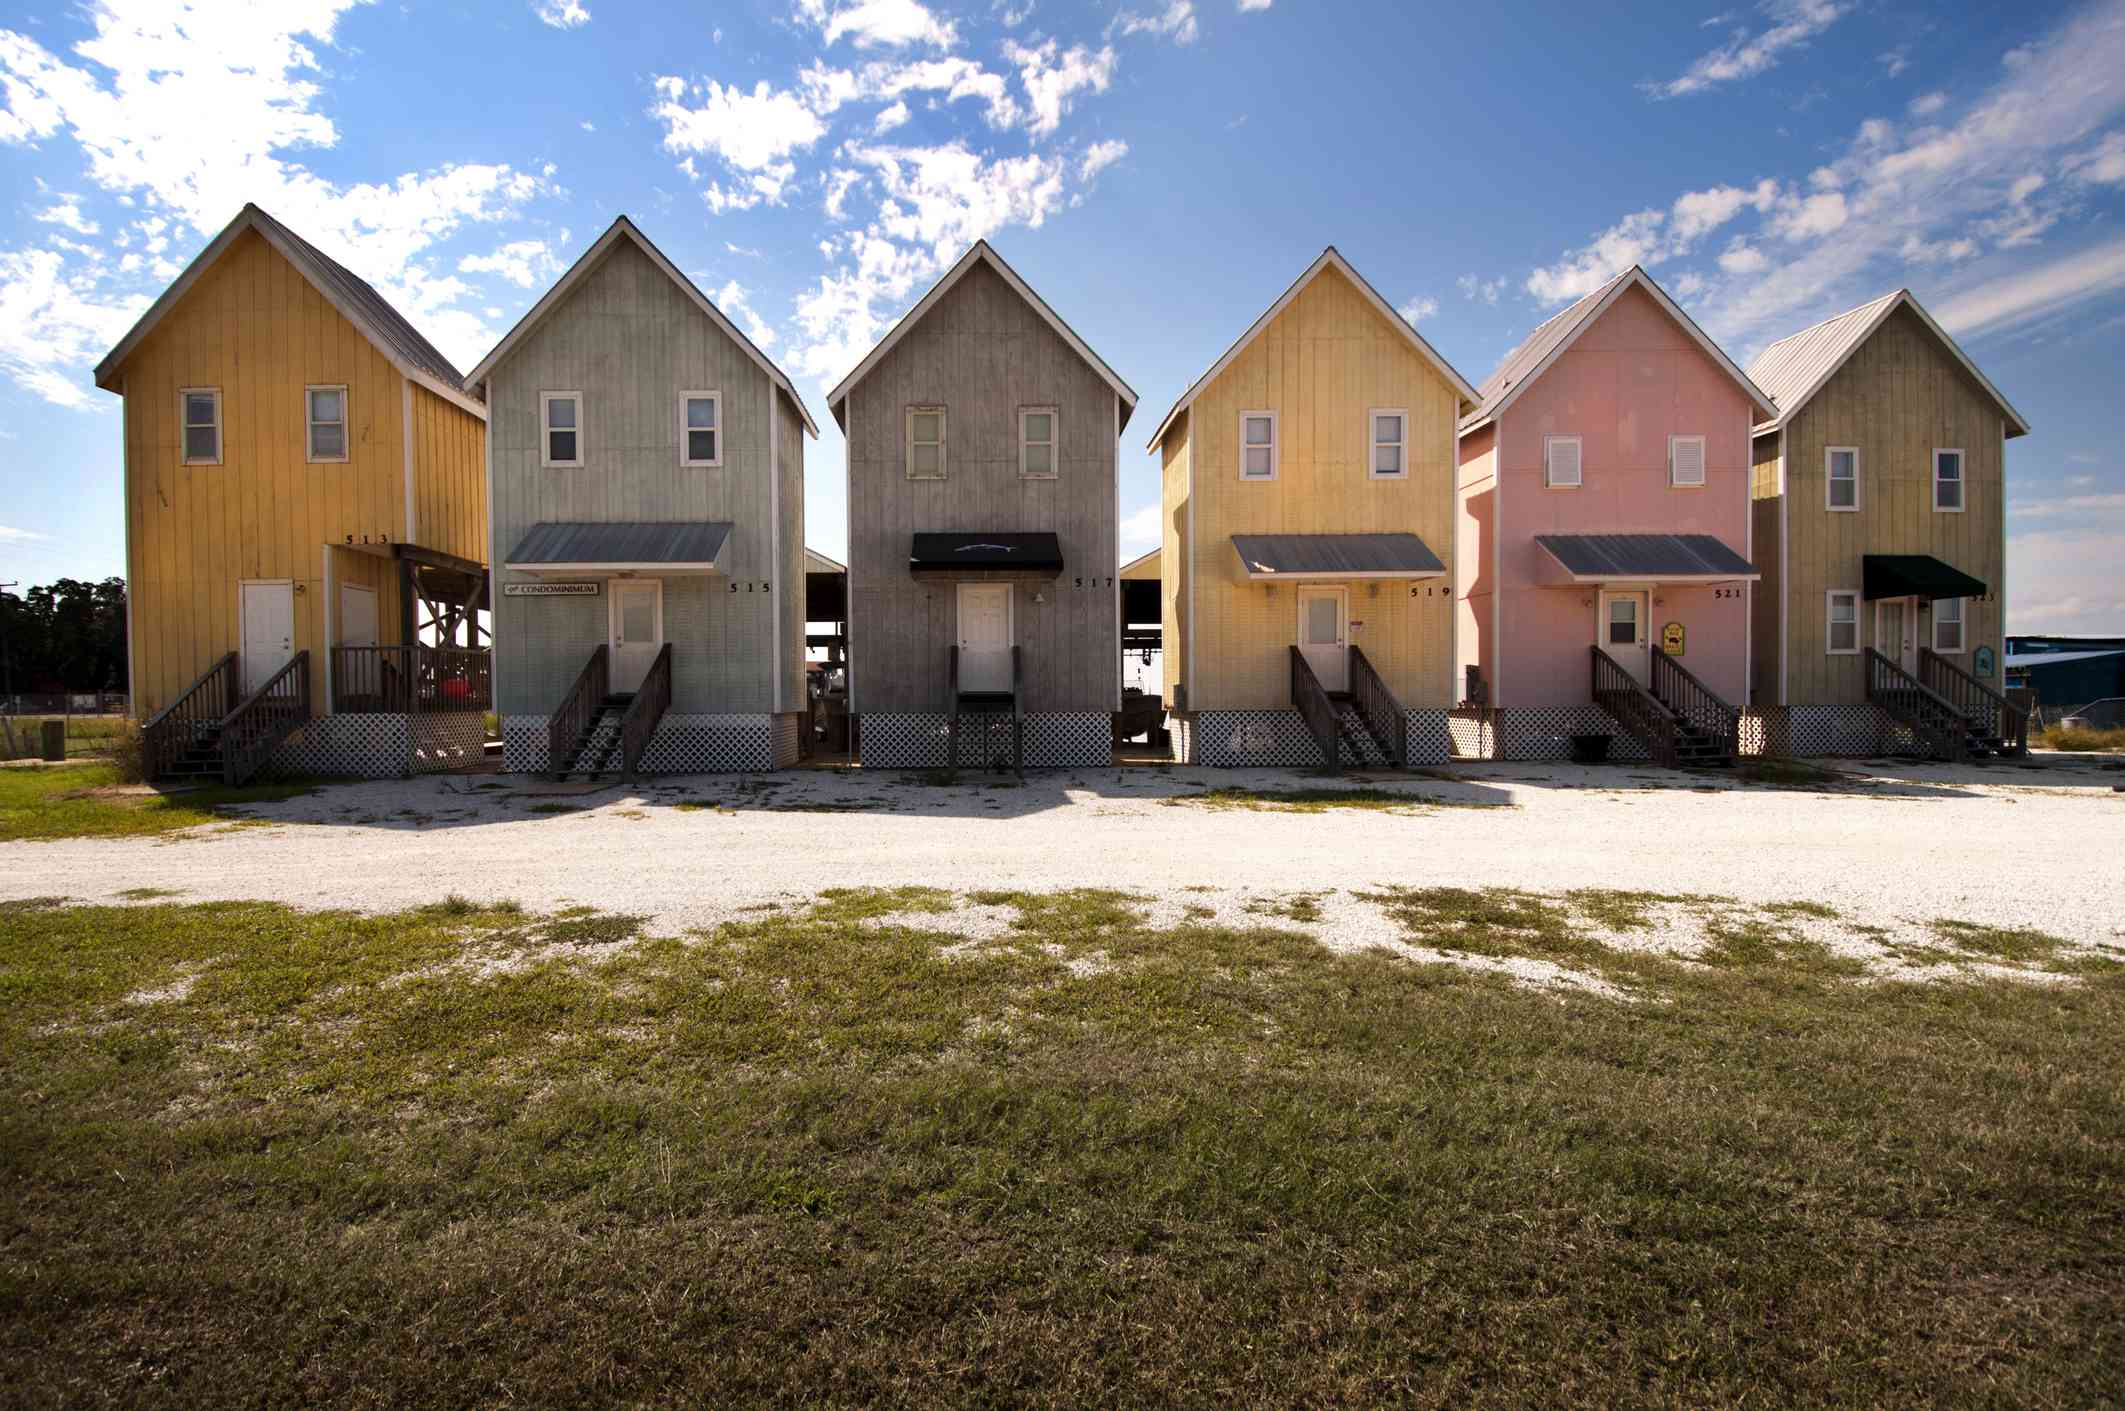 Vacation Condos, six in a row, brightly painted wooden, chalett style